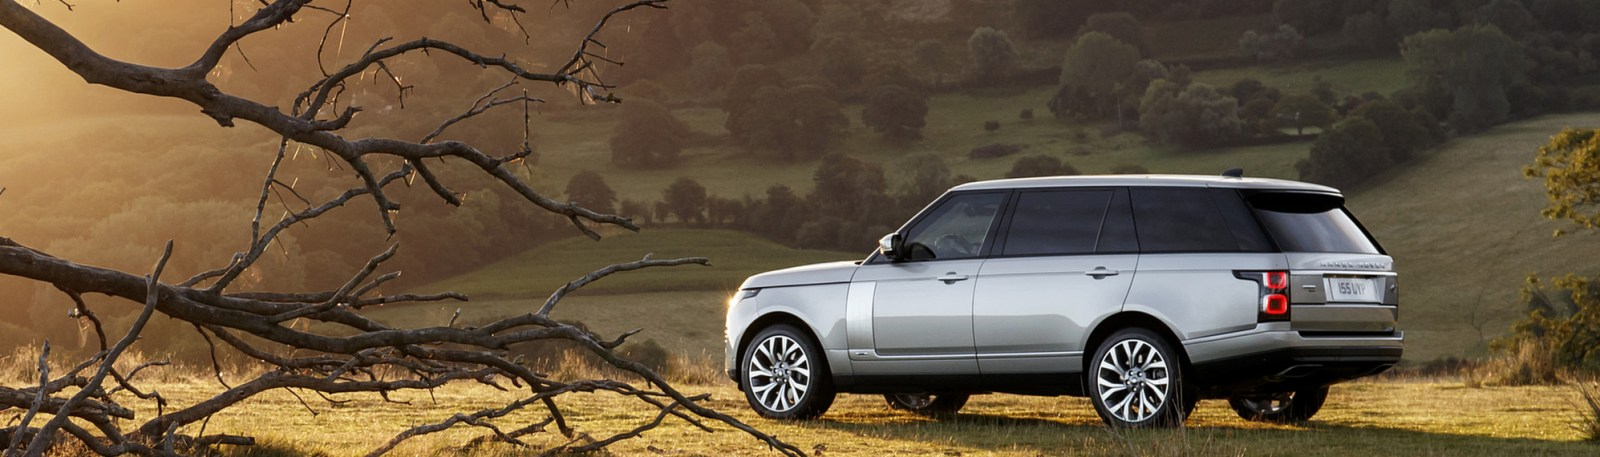 Yeovil Land Rover Contact Us Helston Garages Group